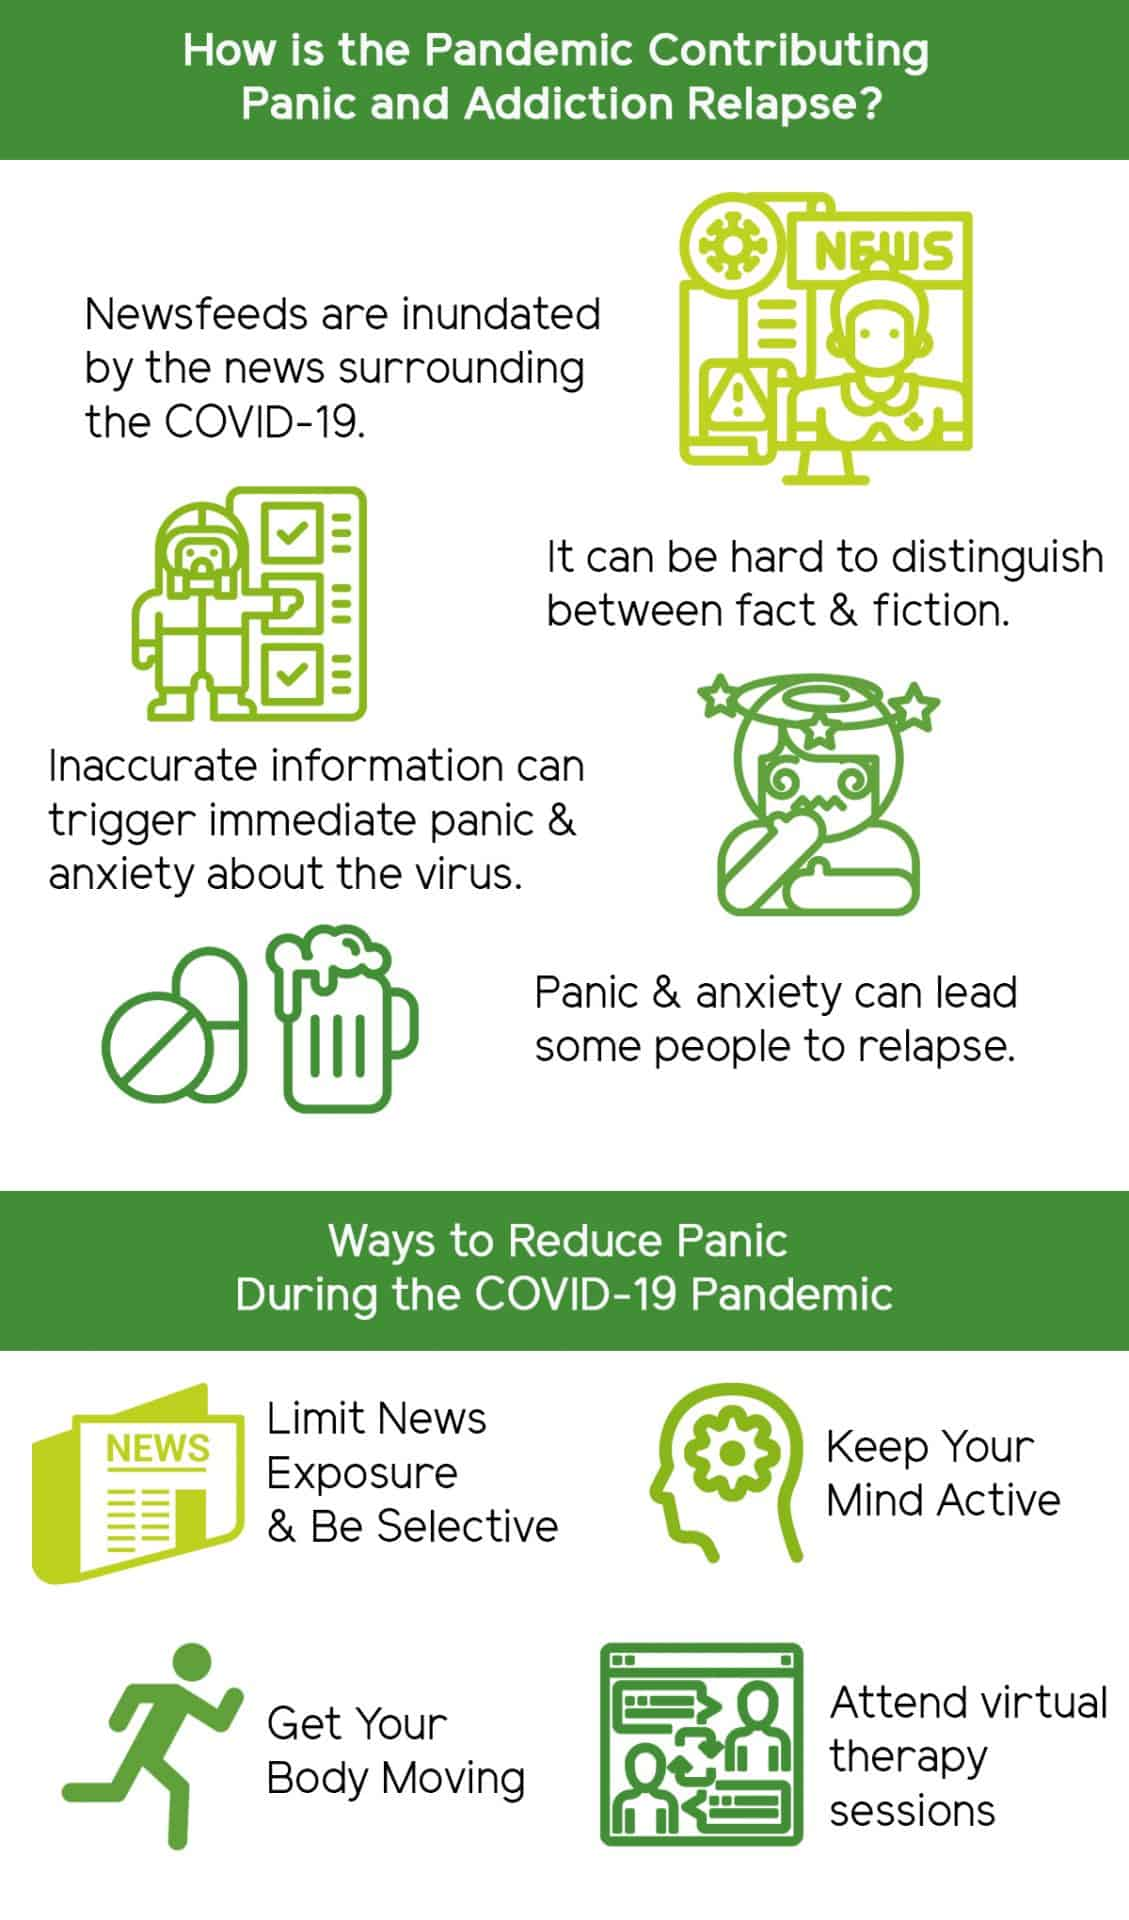 How to Avoid Panic and Addiction Relapse During the Pandemic